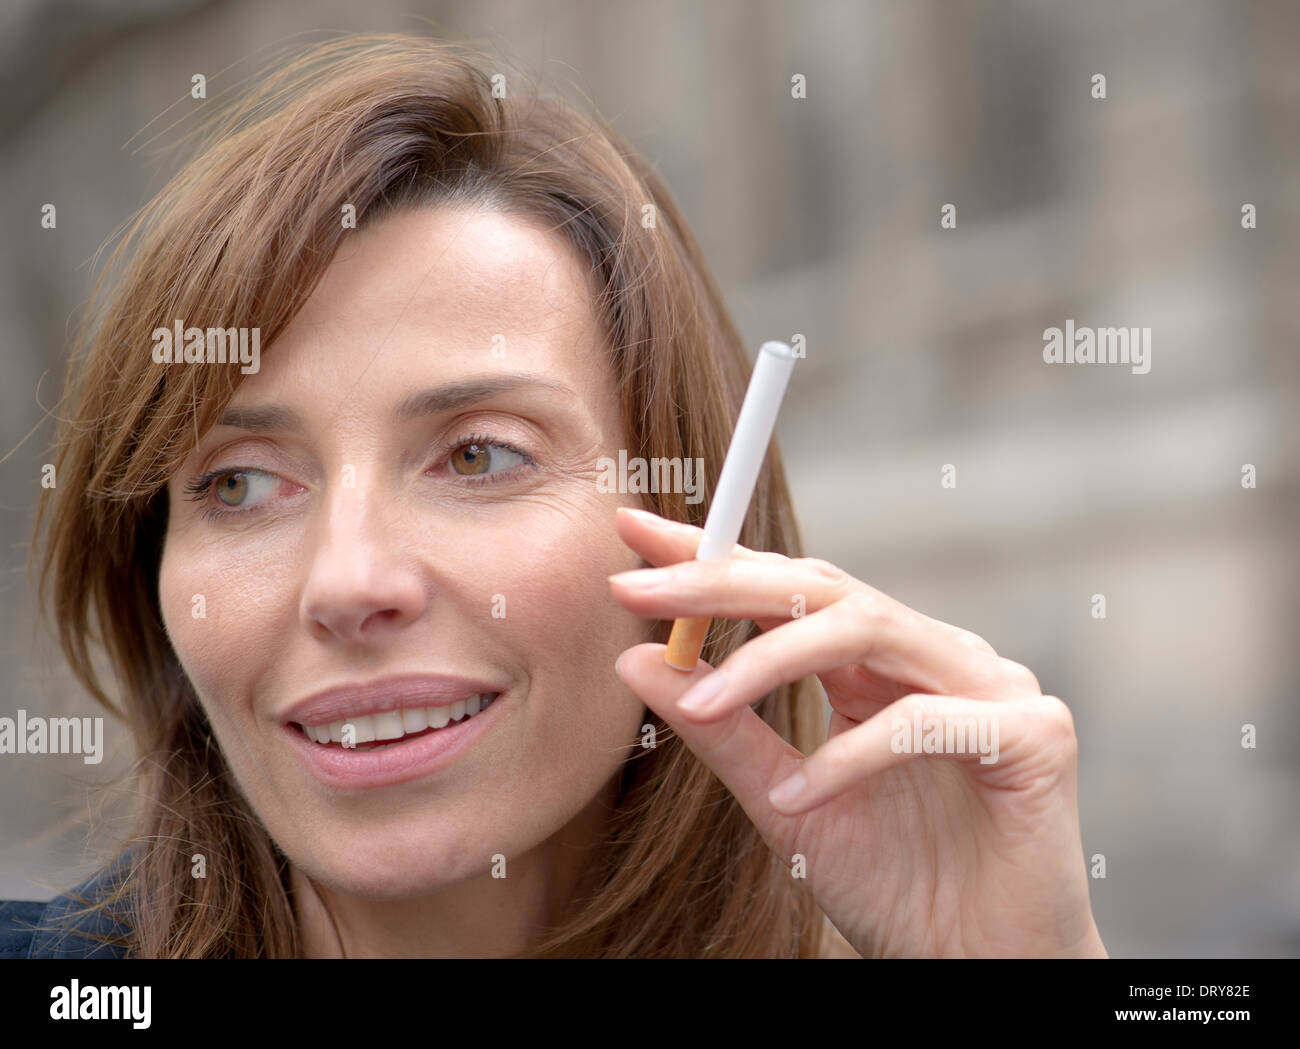 Woman smoking cigarette électronique Photo Stock